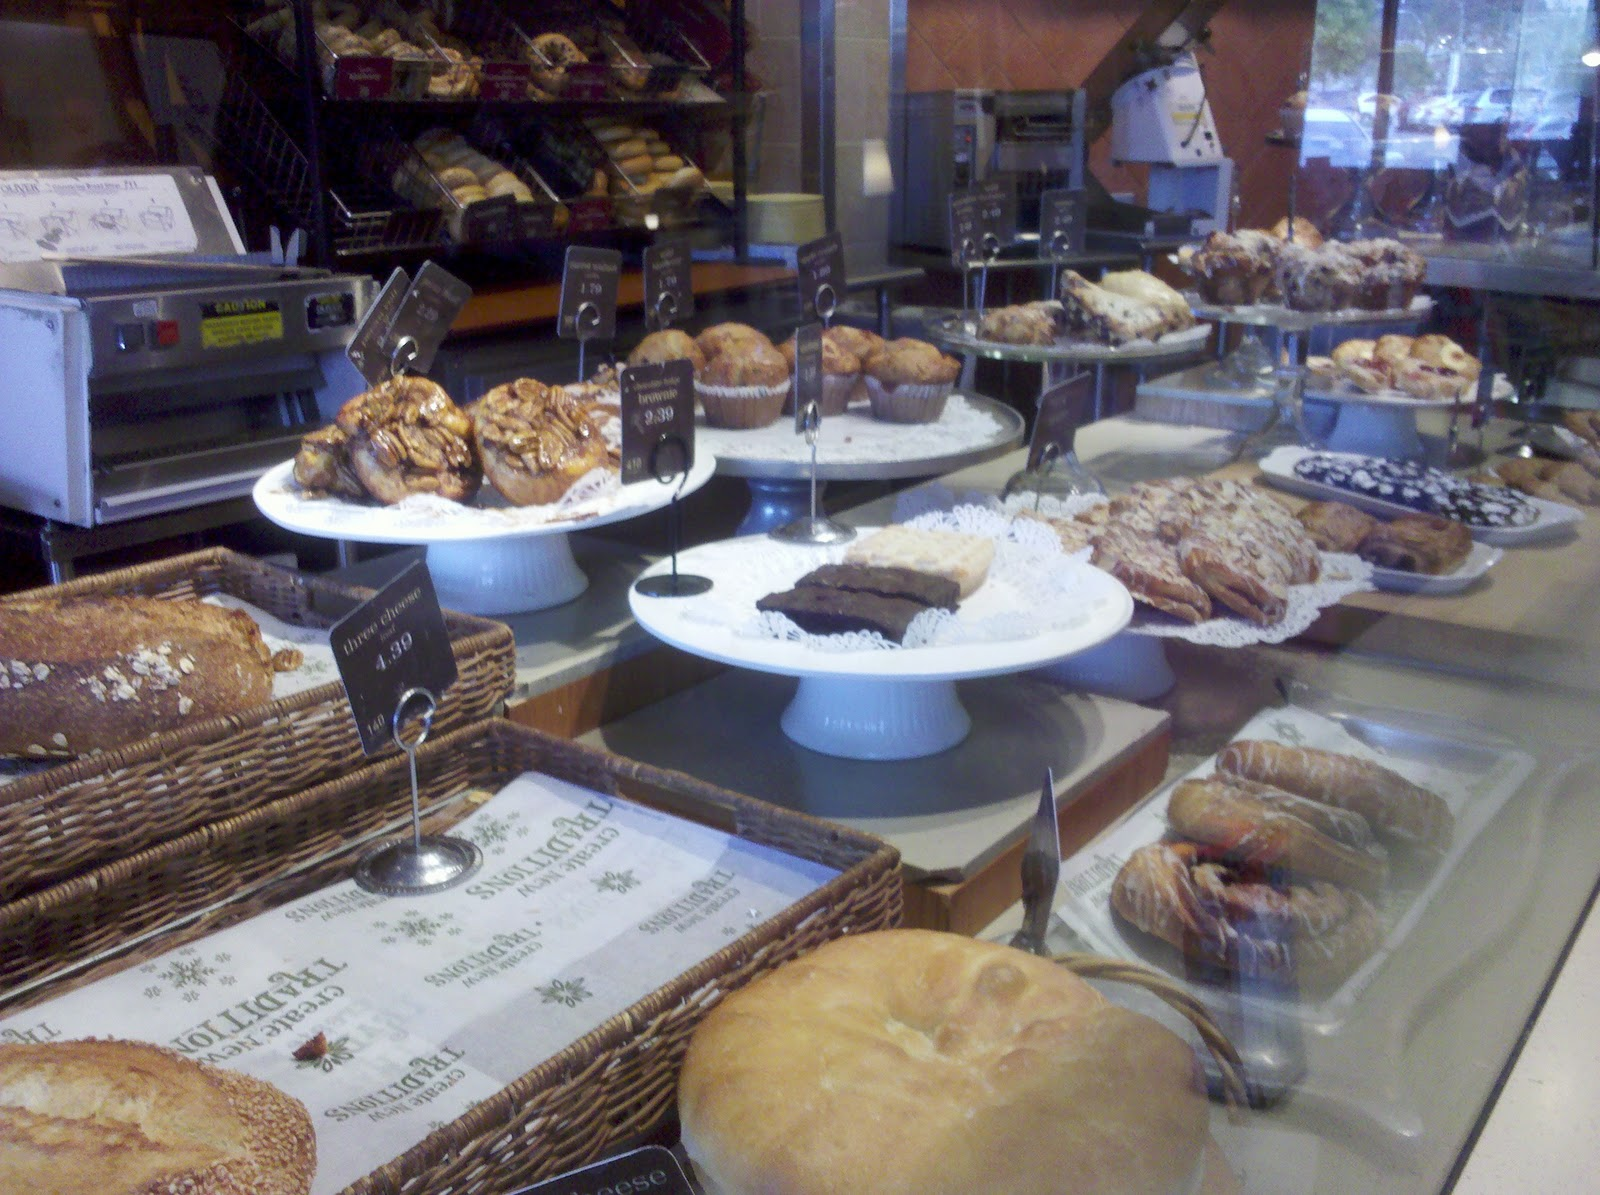 ... when you first walk in. Fresh baked bread and pastries. Yes, please